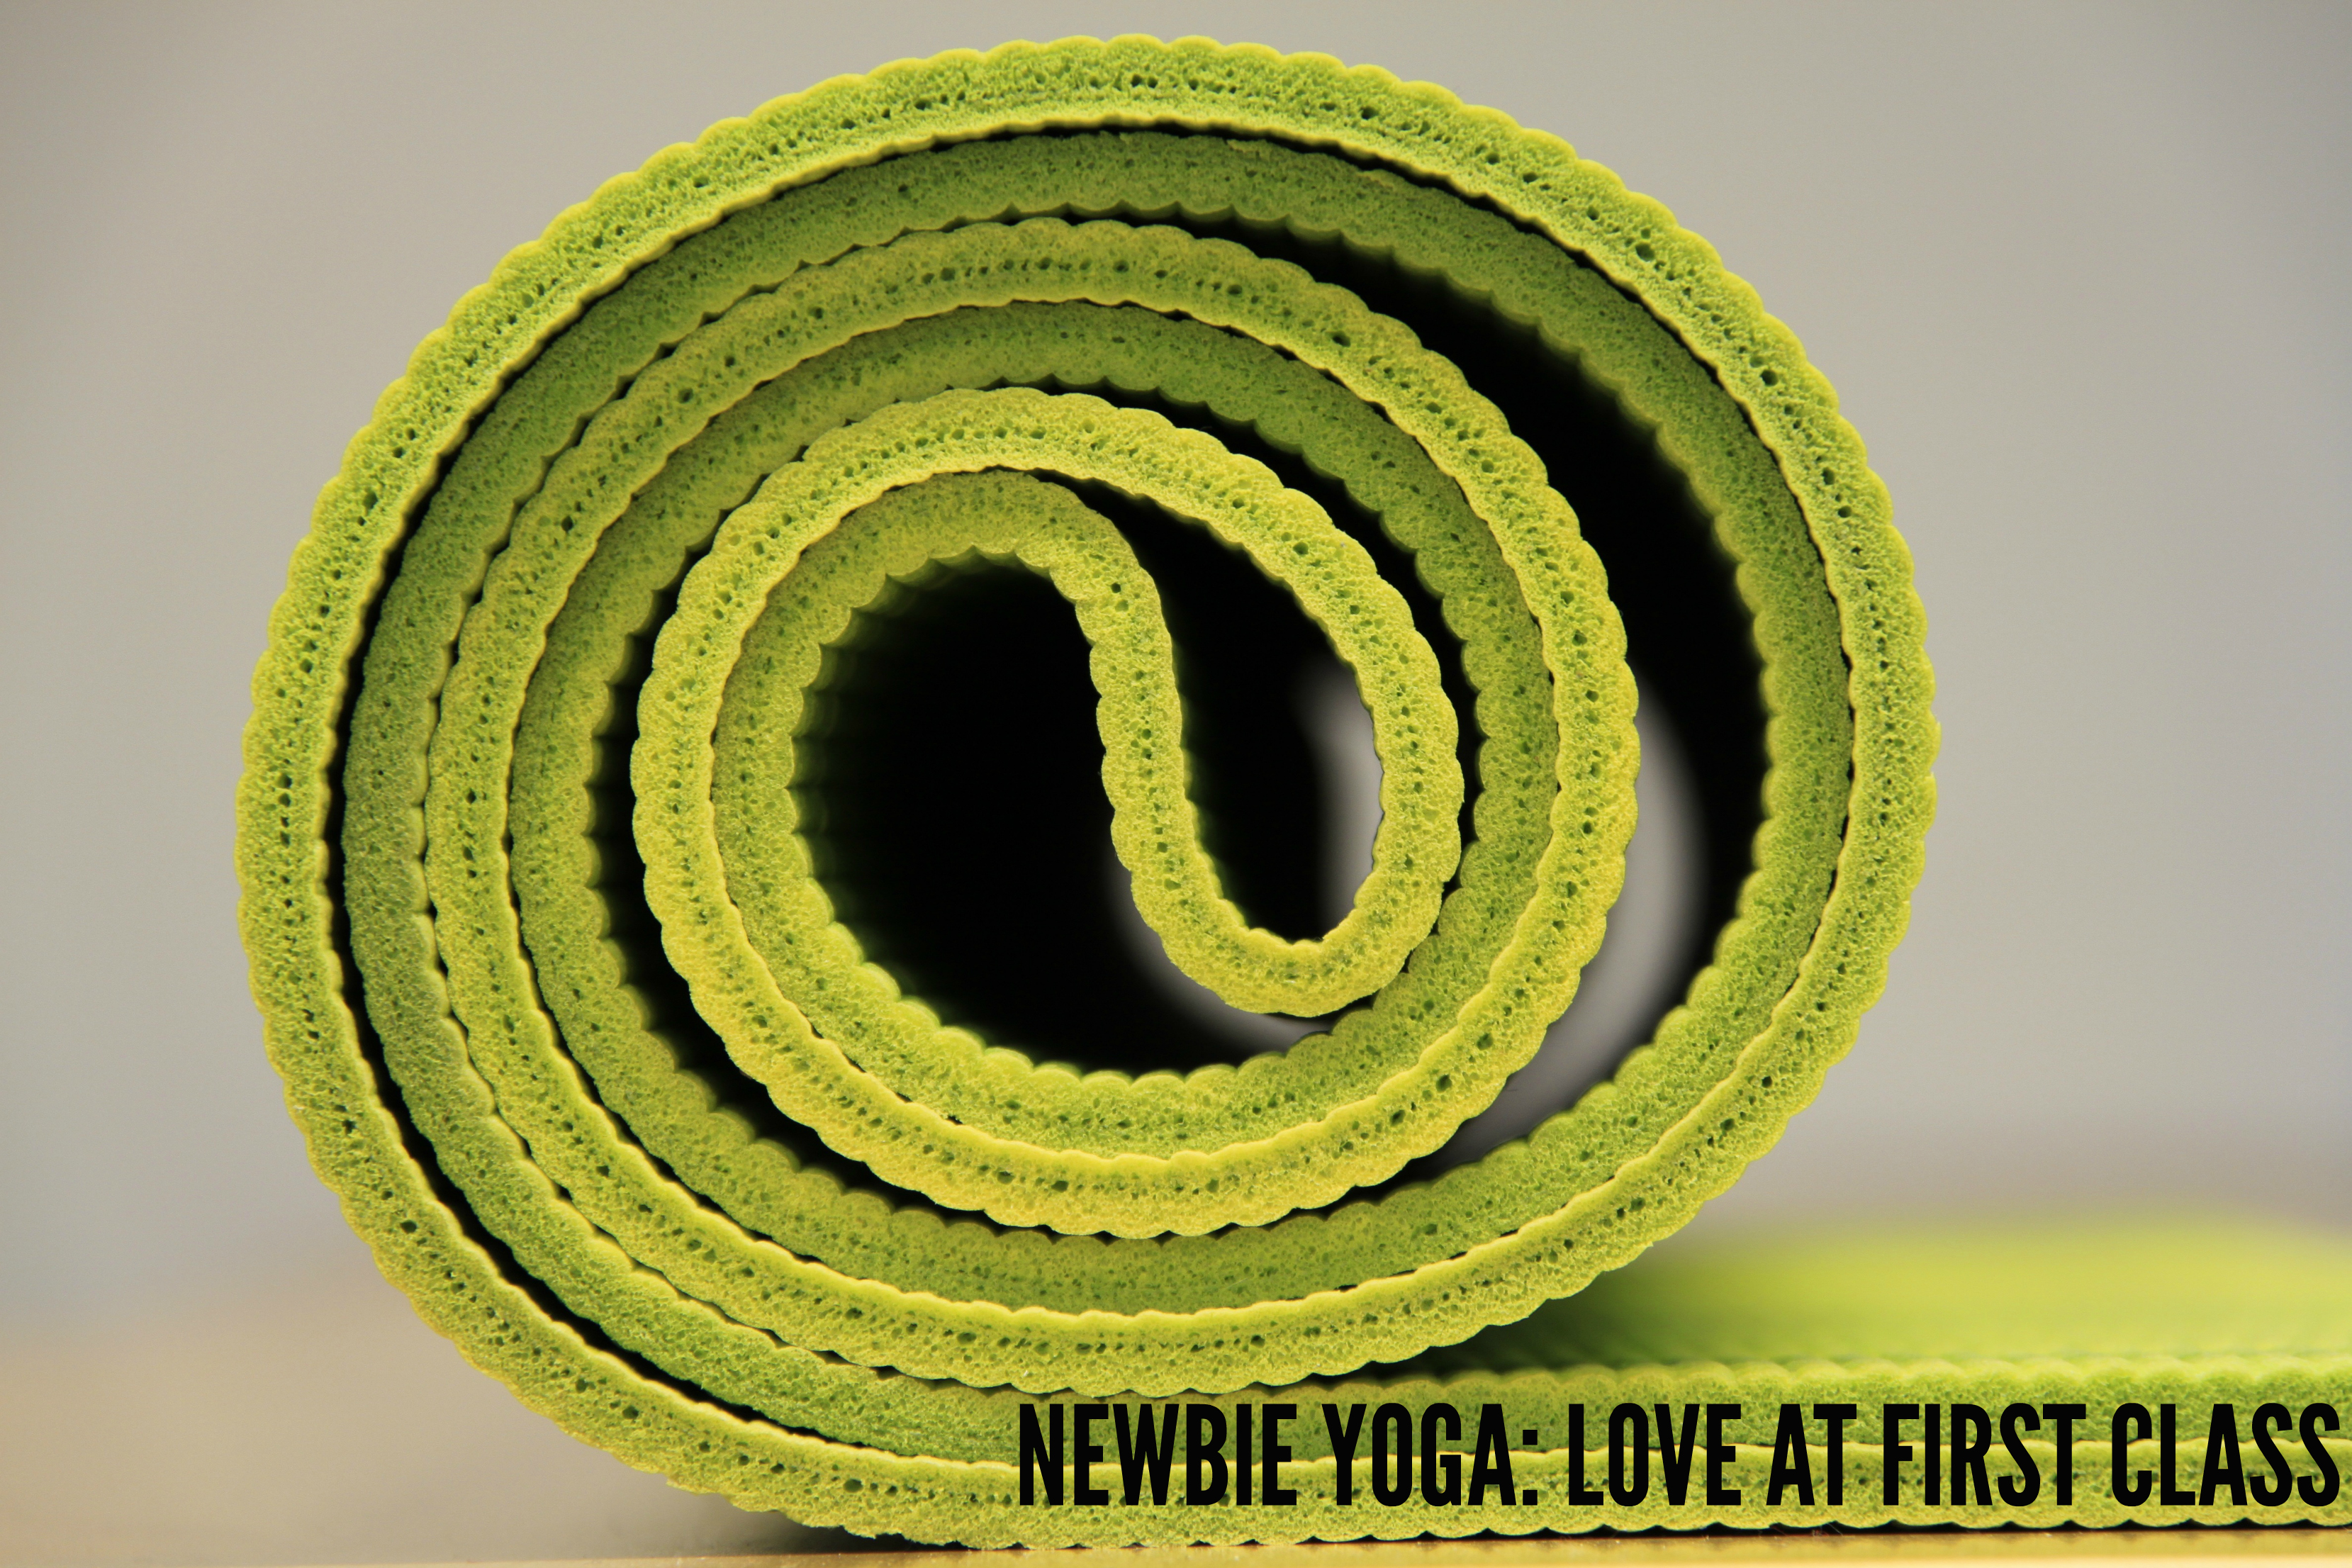 Newbie Yoga: Love at first class